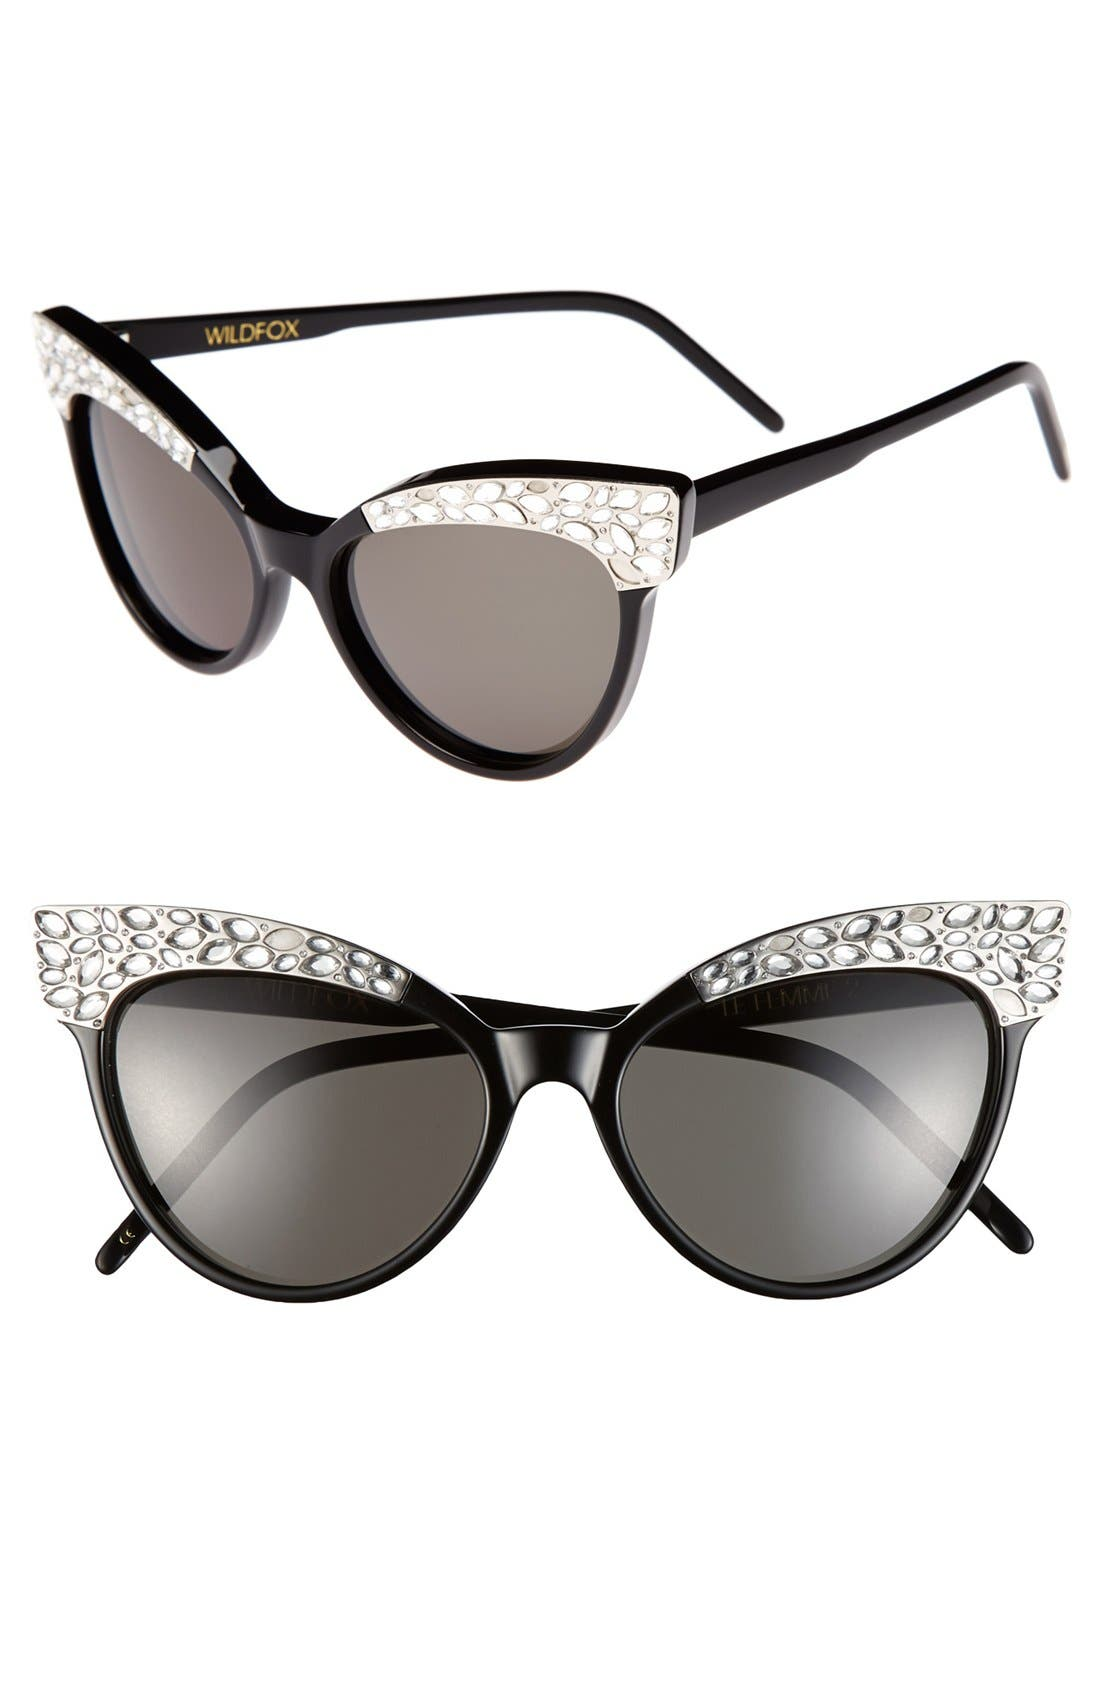 Alternate Image 1 Selected - Wildfox 'Le Femme 2' 55mm Cat Eye Sunglasses